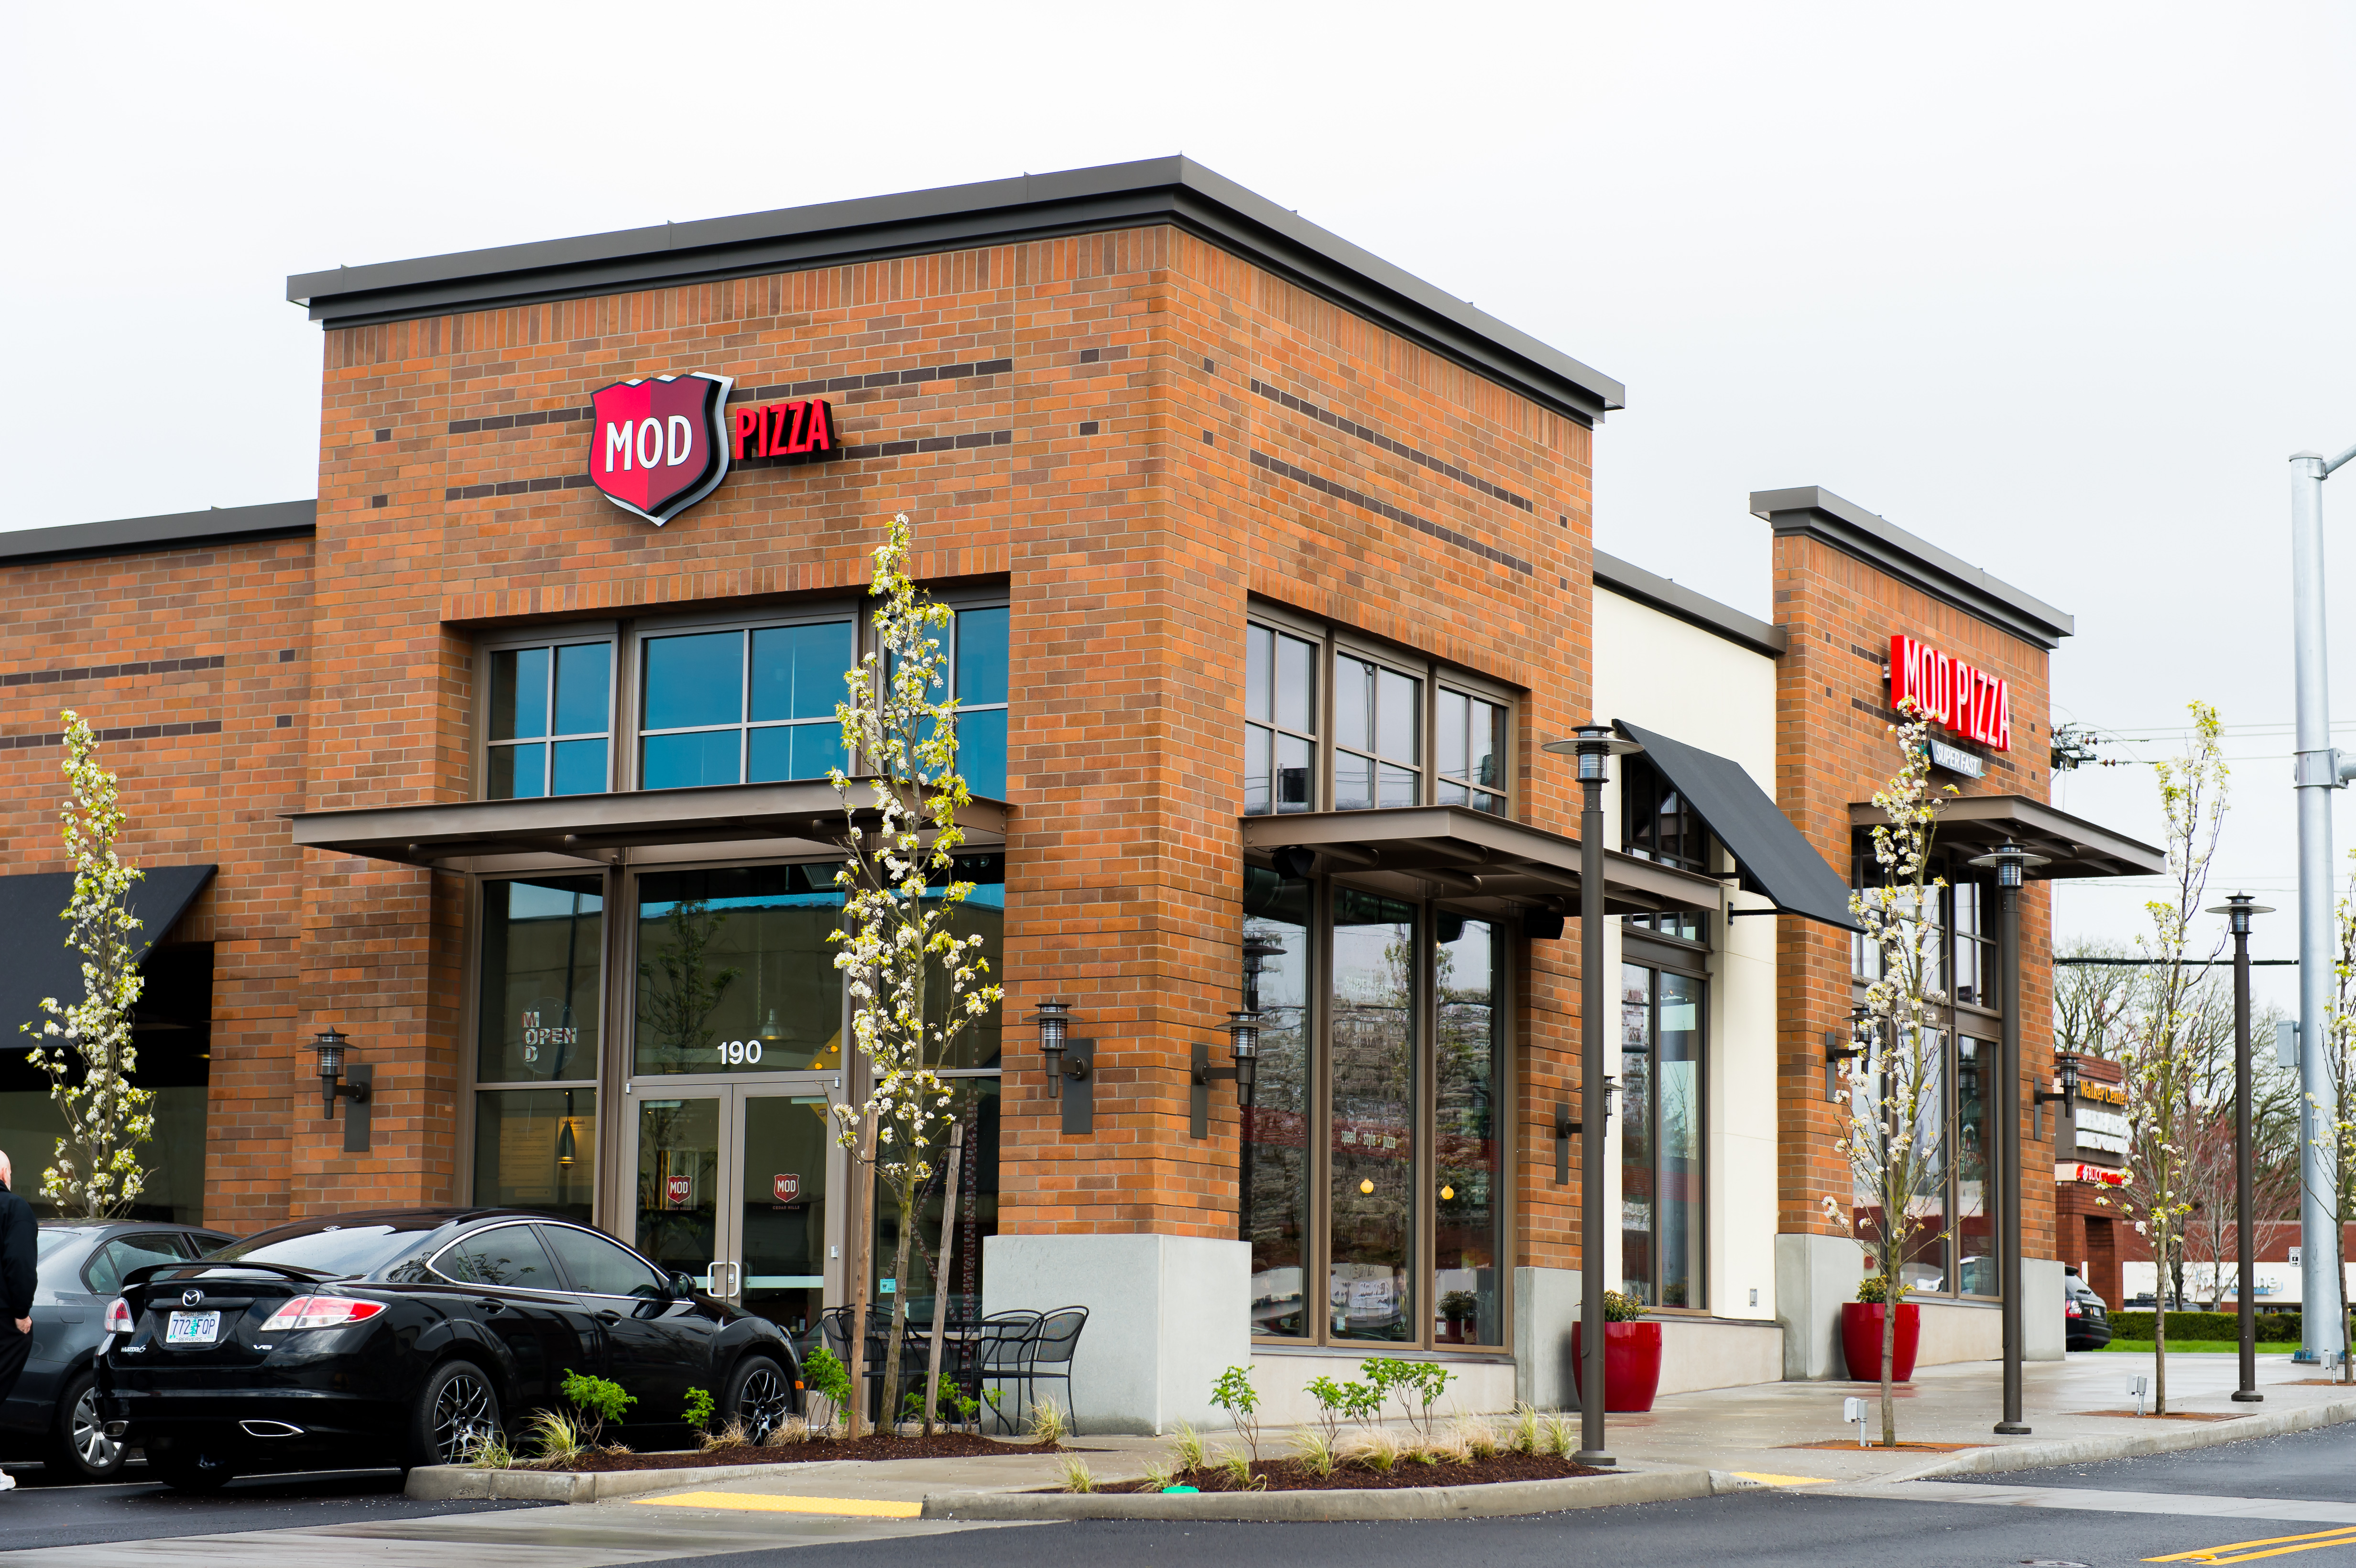 Transwestern Completes 23 Mod Pizza Leases Realty News Report